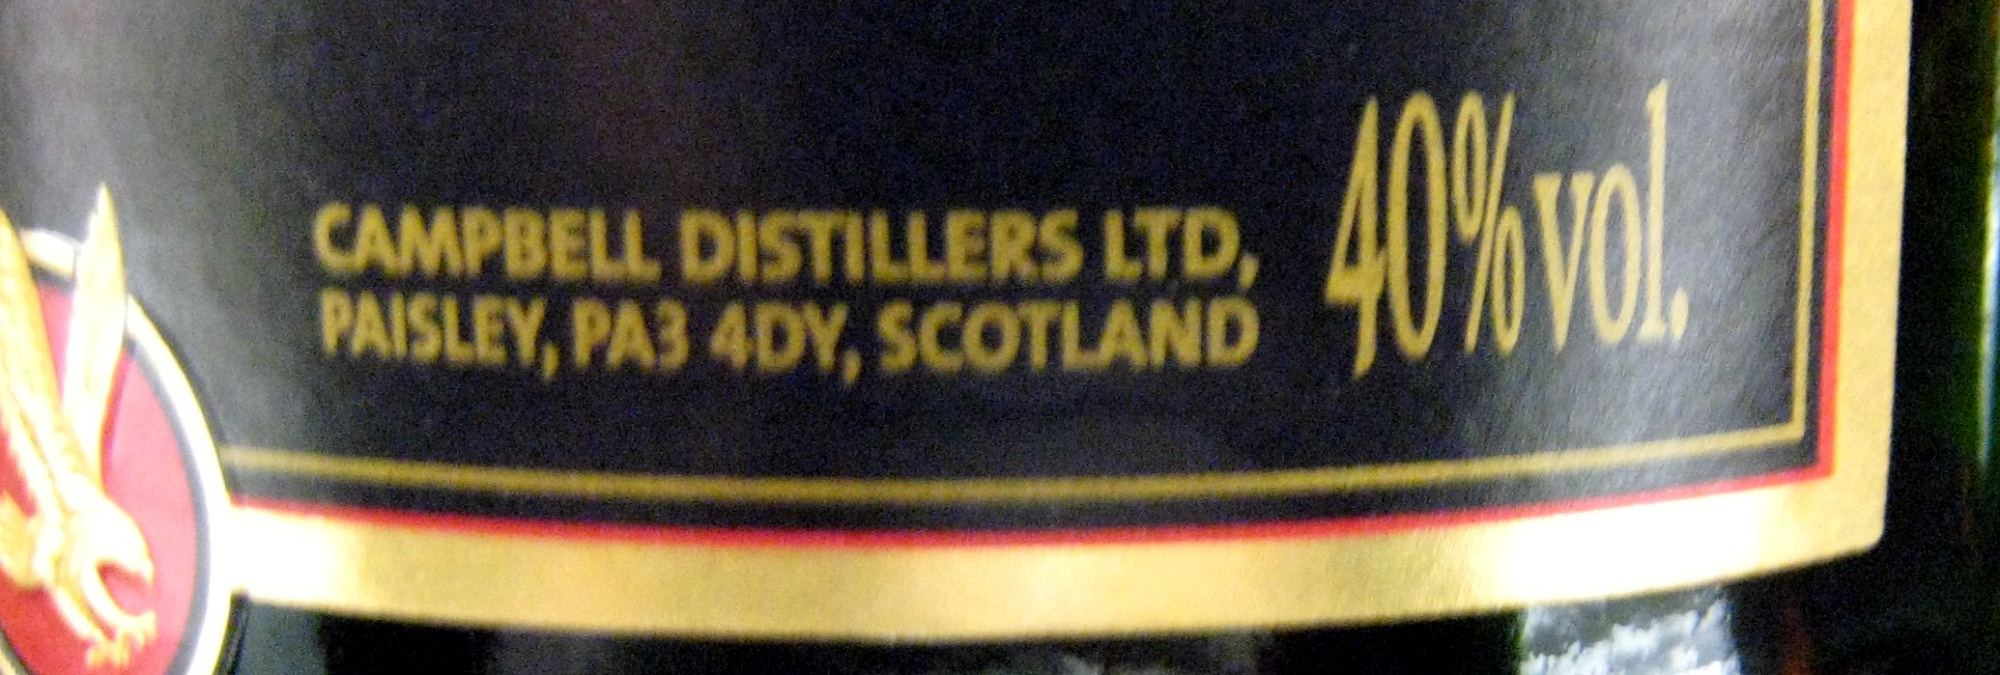 Whisky Ecosse blended 70 cl Clan Campbell - Informations nutritionnelles - fr